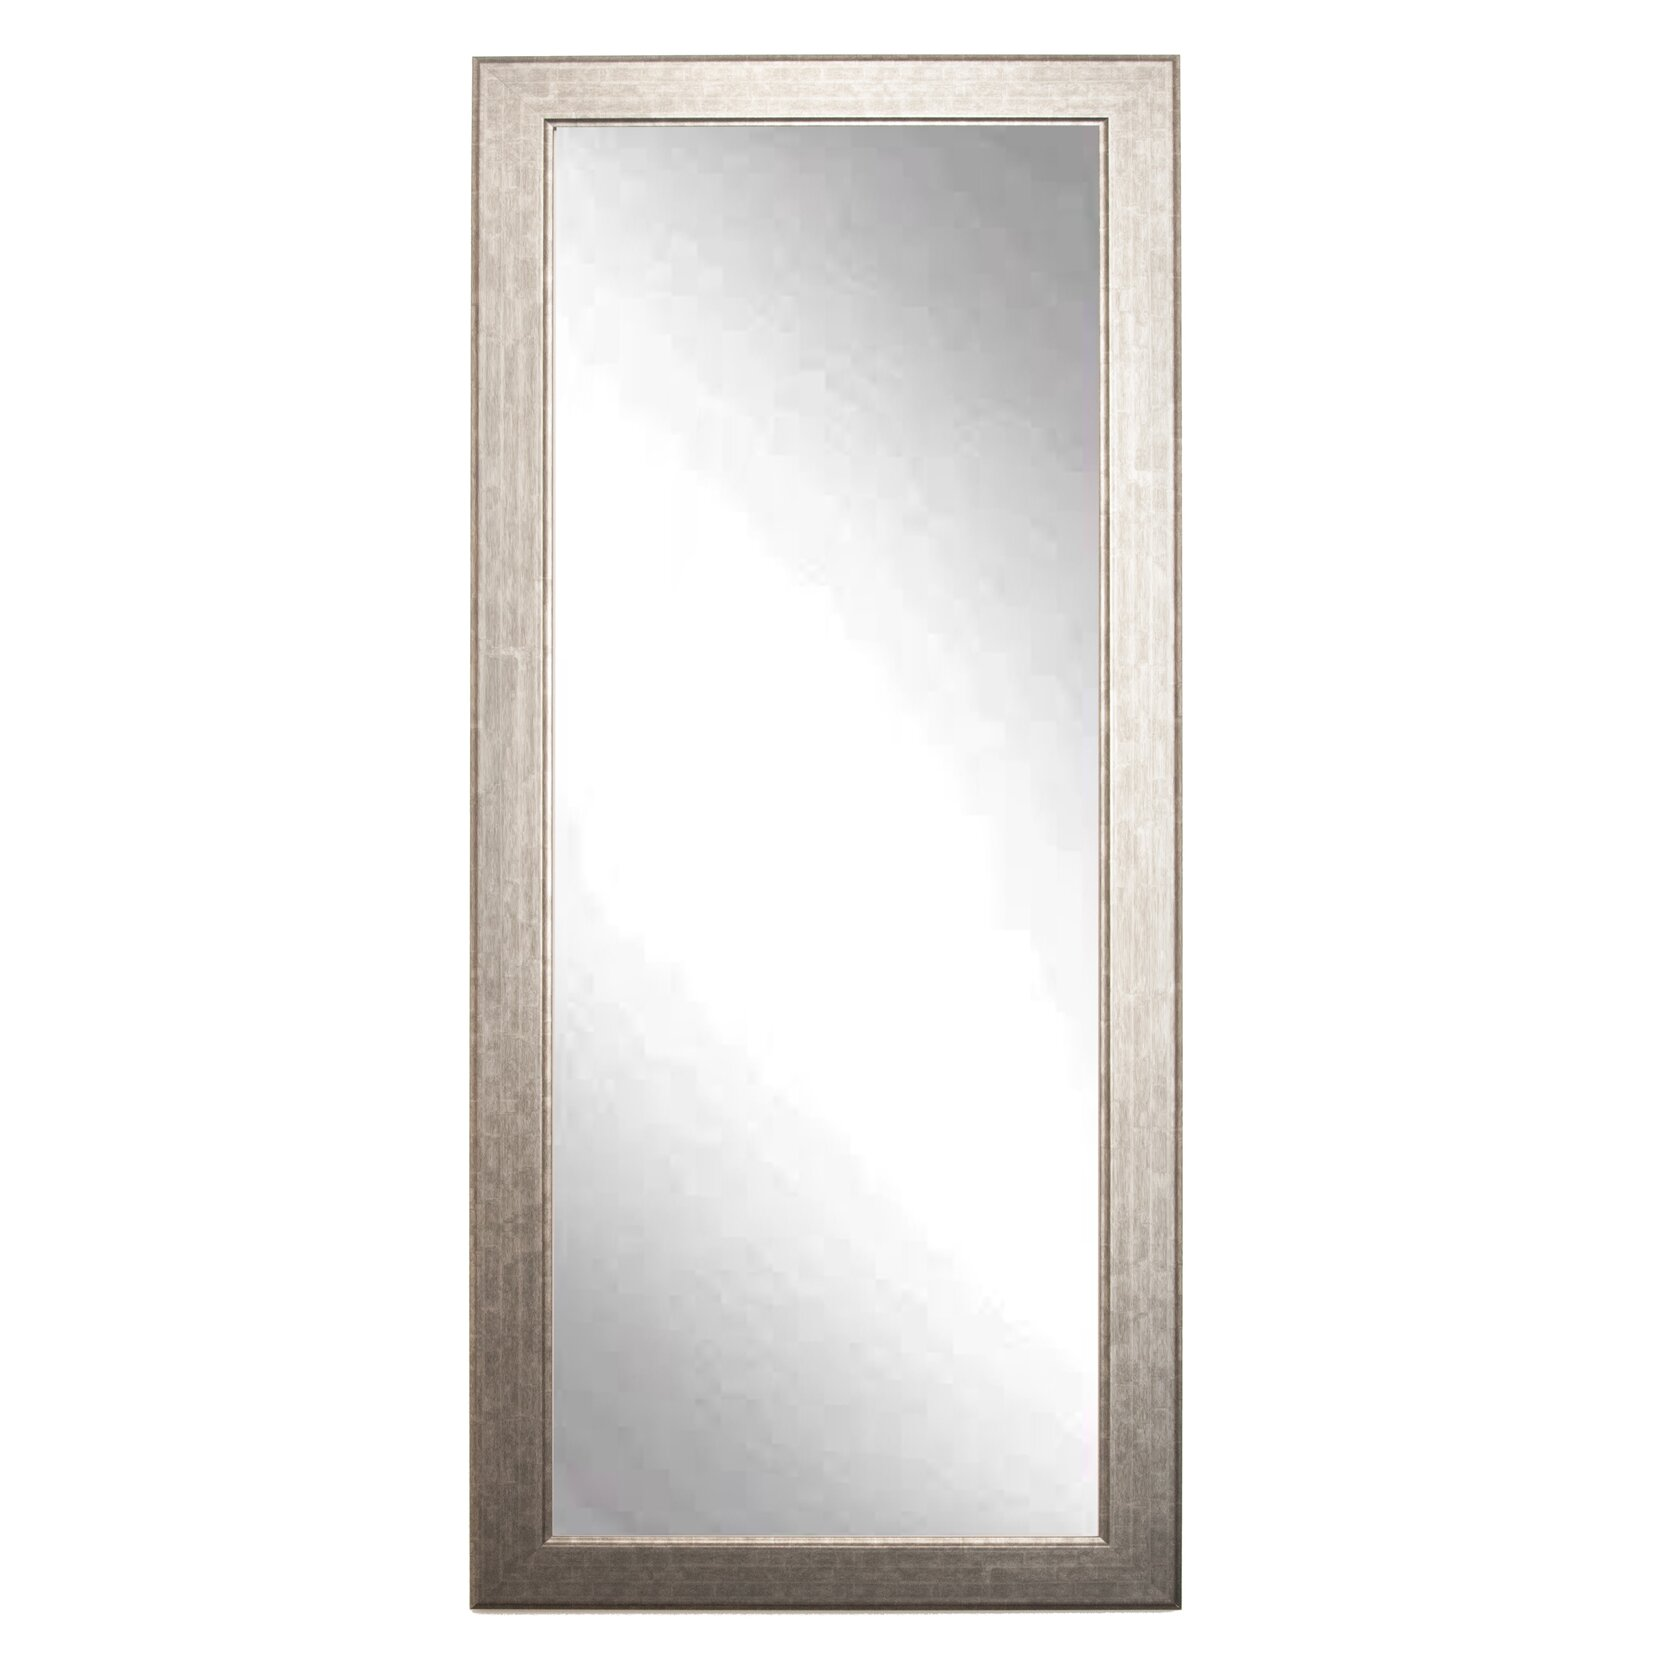 Brandtworksllc subway silver elite tall accent wall mirror for Tall glass mirror